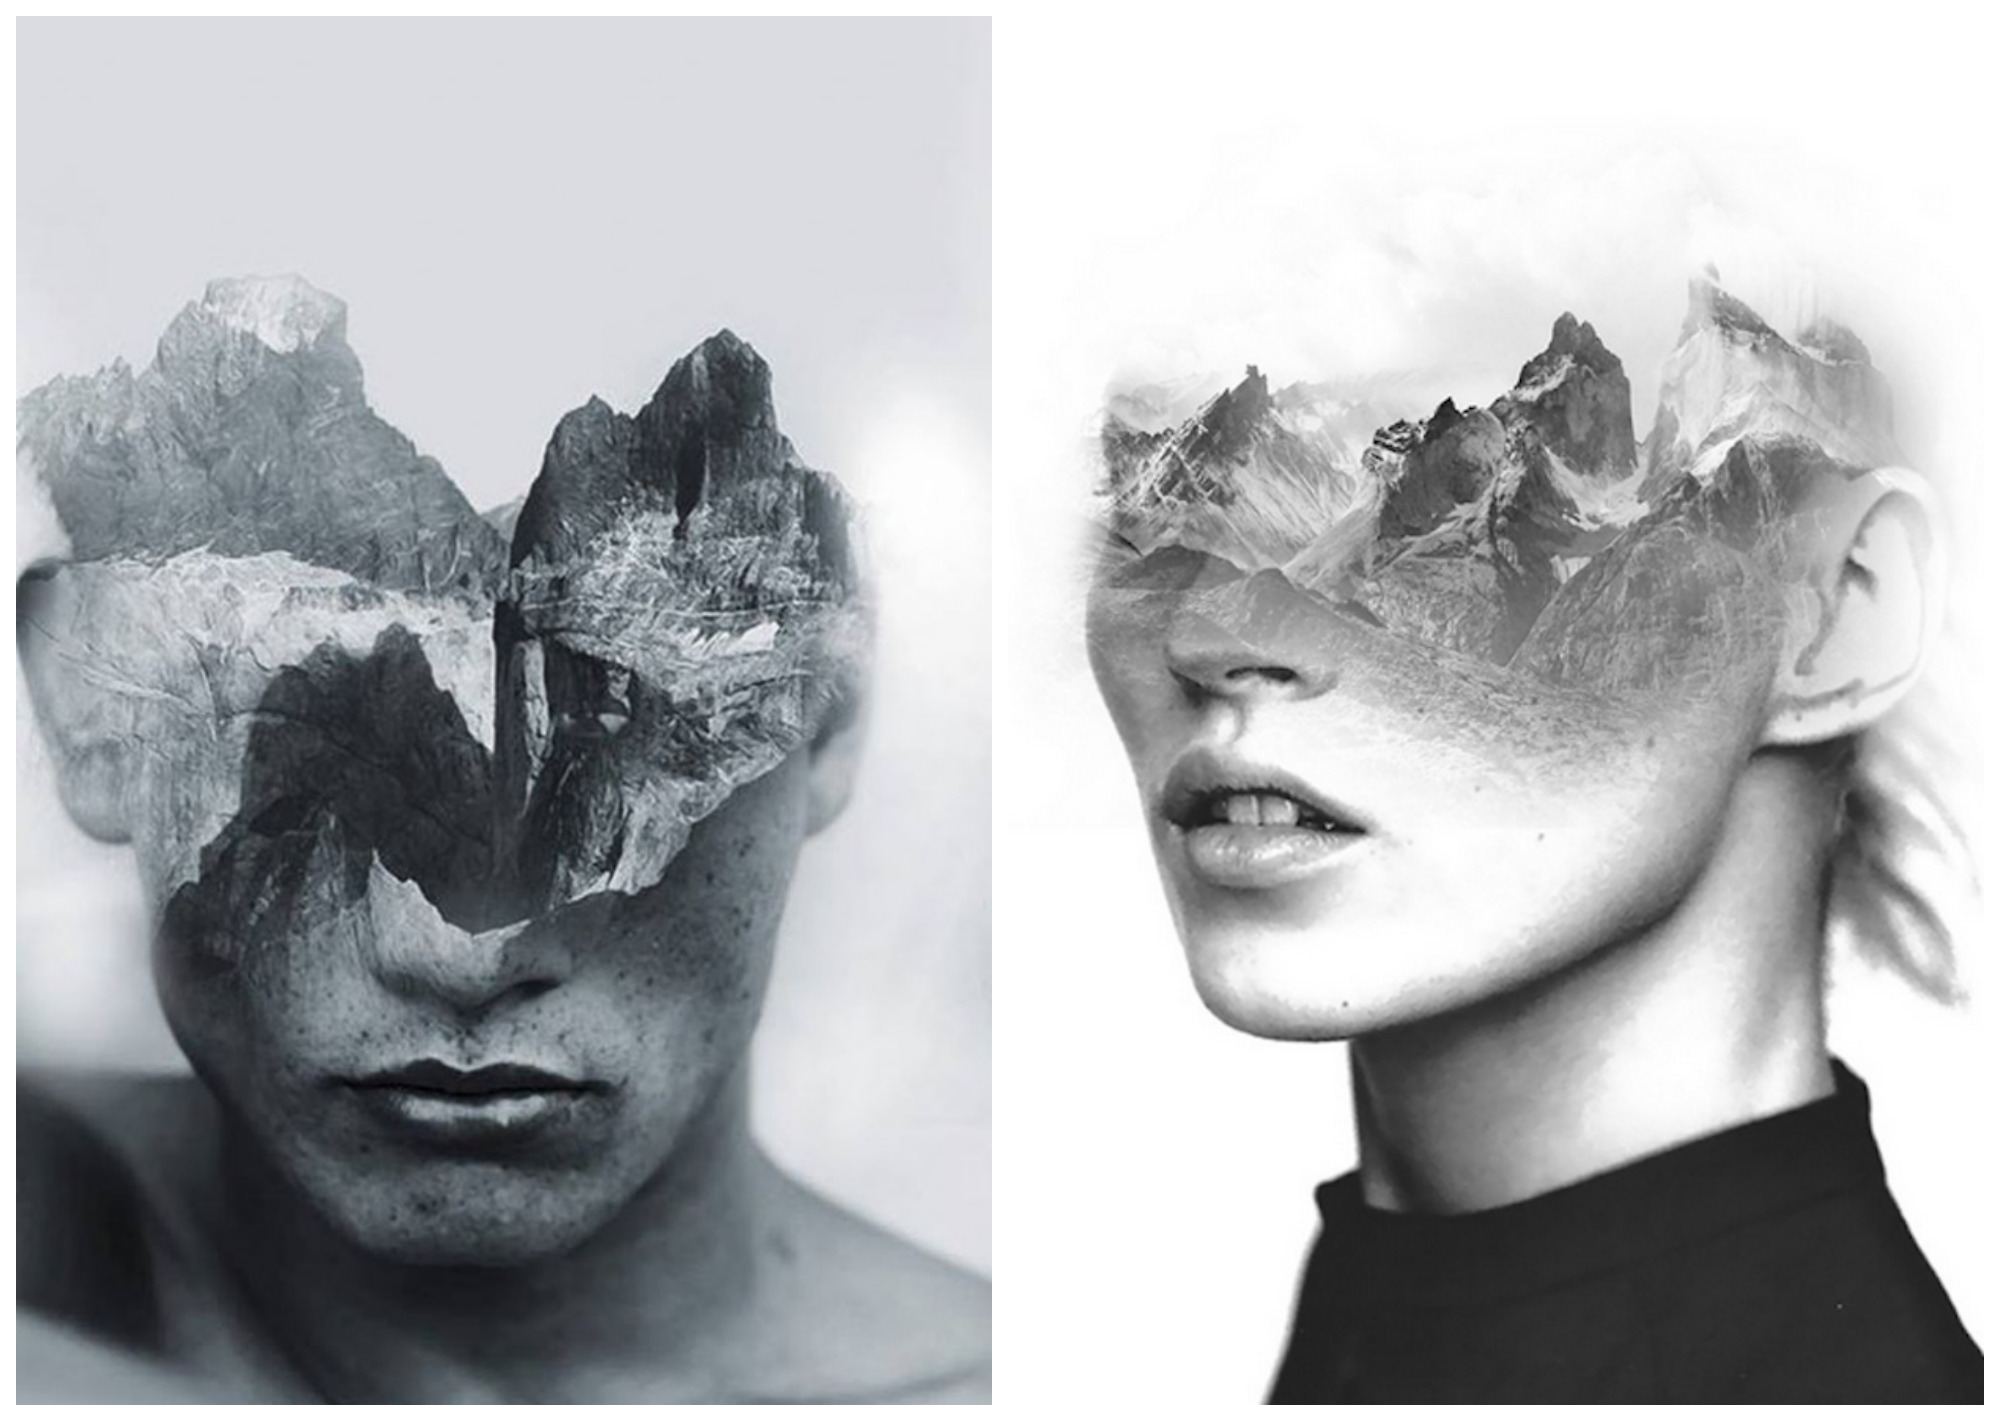 Les Portraits Surr Alistes D 39 Antonio Mora Graine De Photographe The Blog